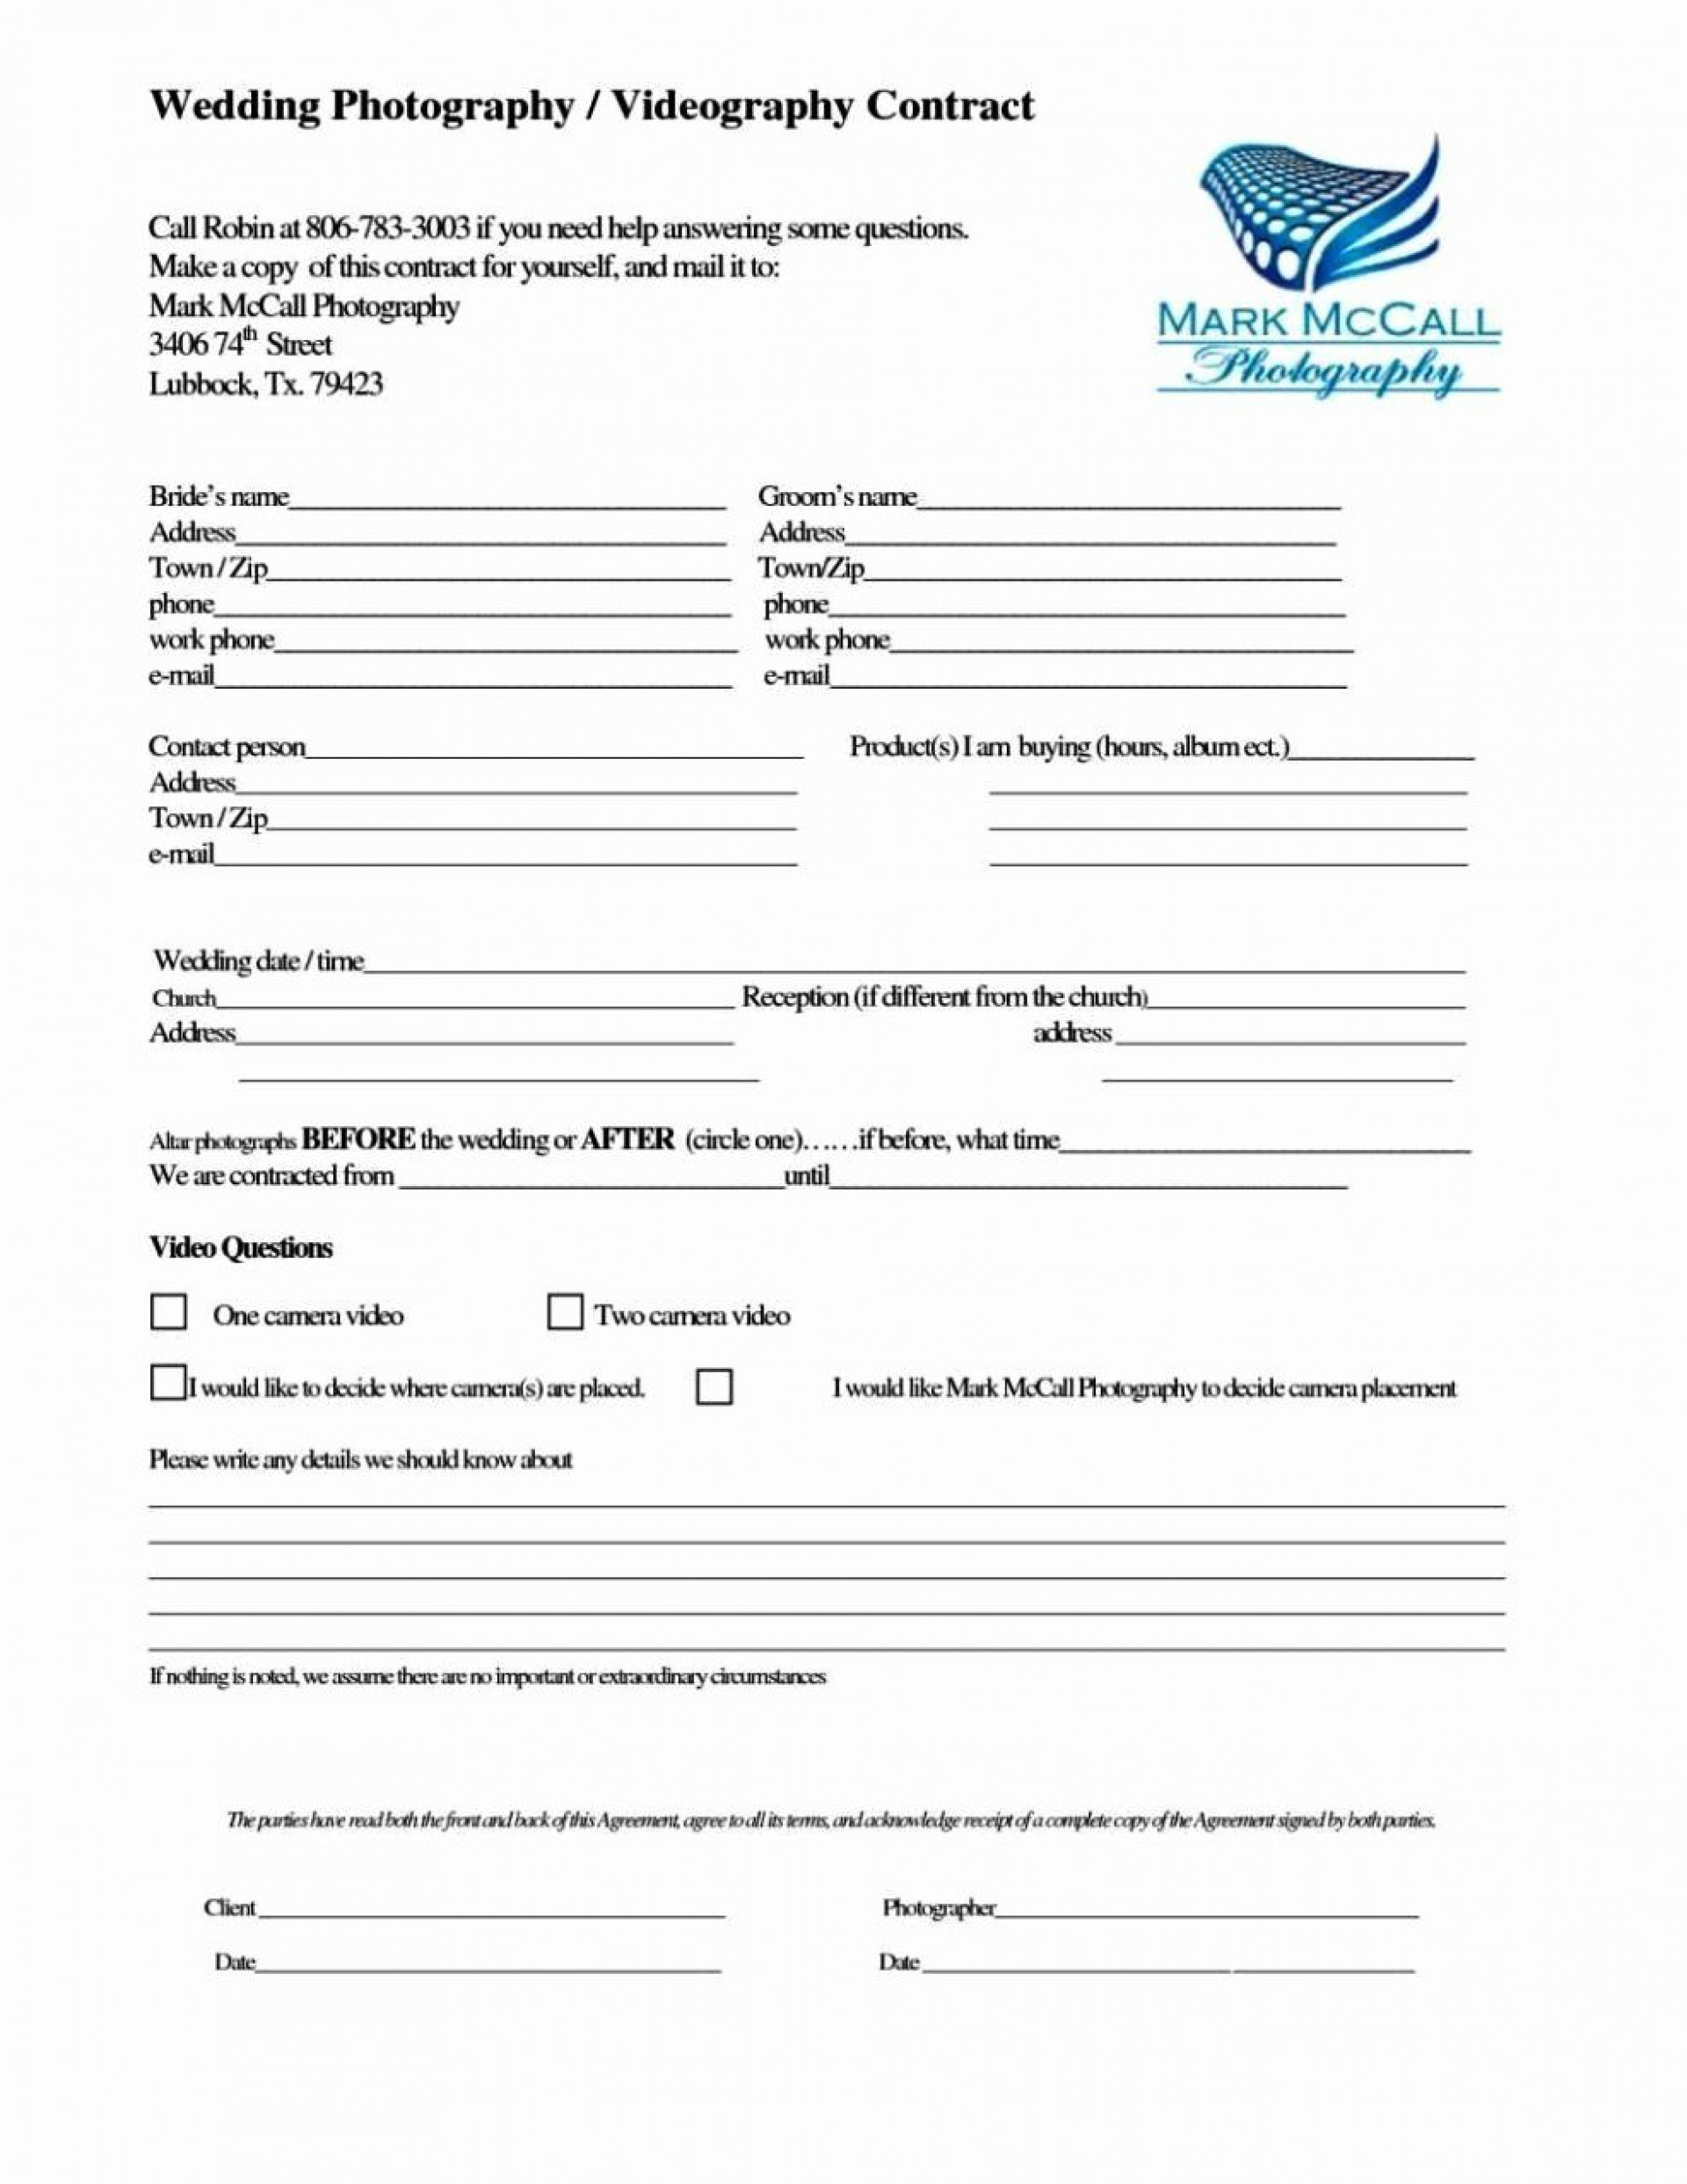 000 Unusual Wedding Videography Contract Template High Resolution  Free1920